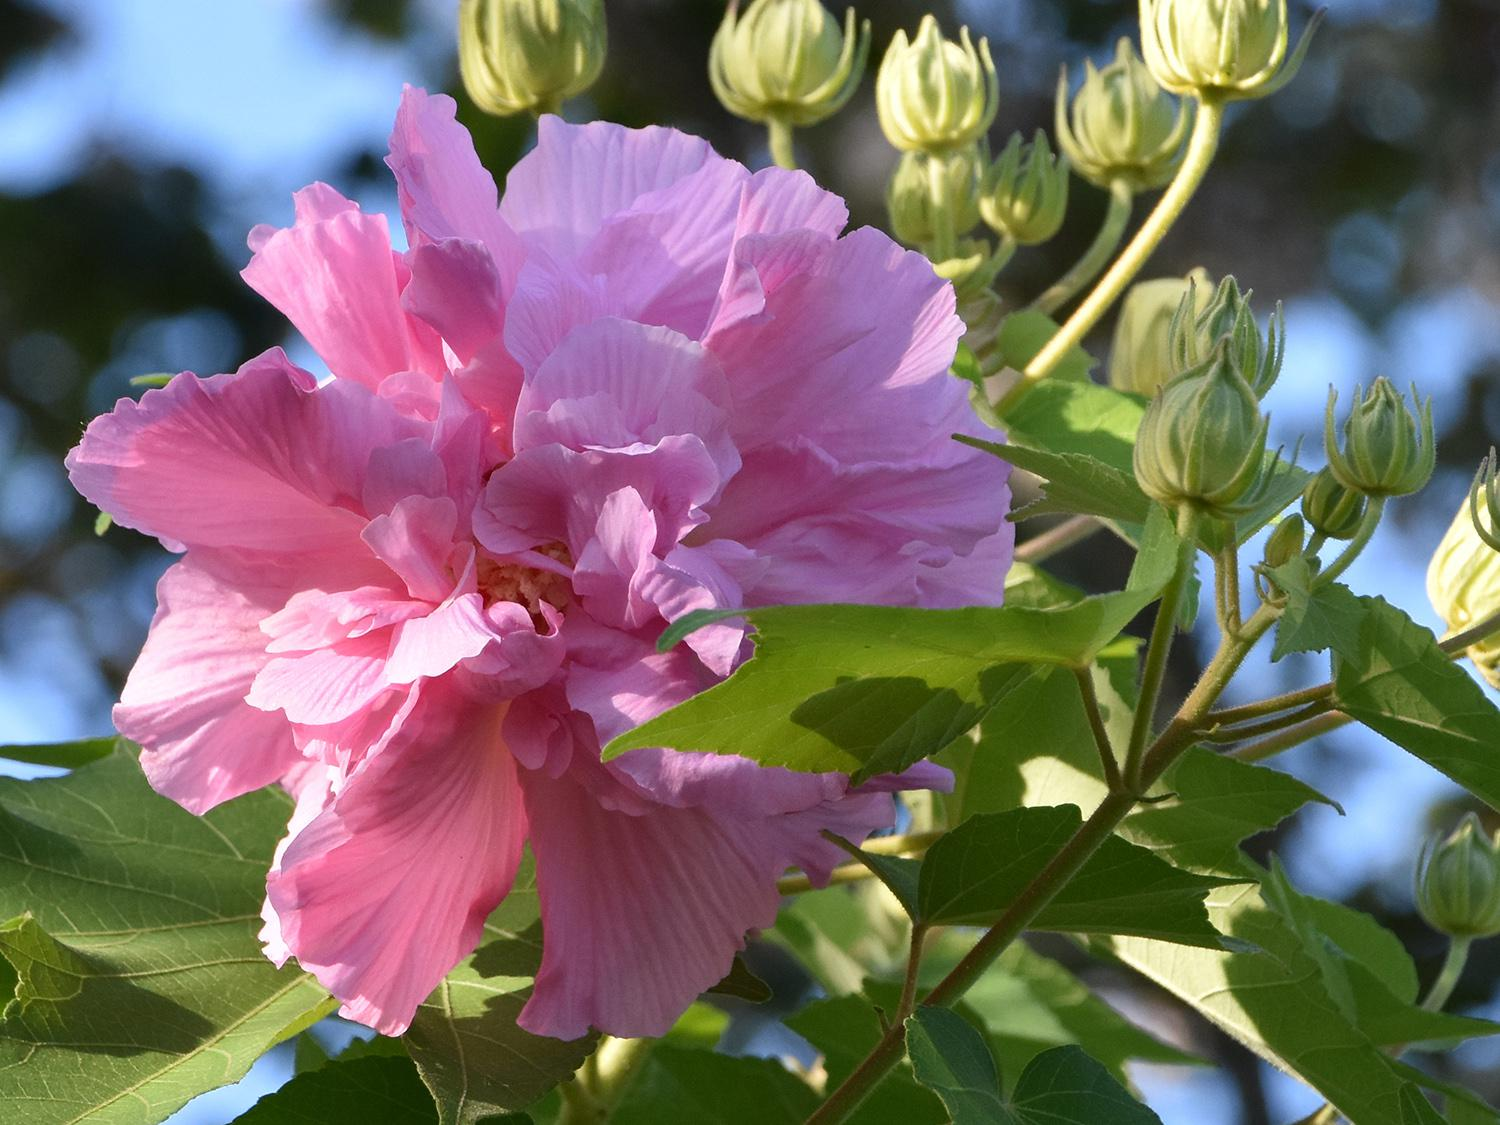 A single, pink flower rests at the end of a branch seen against a leaf-filled blue sky.